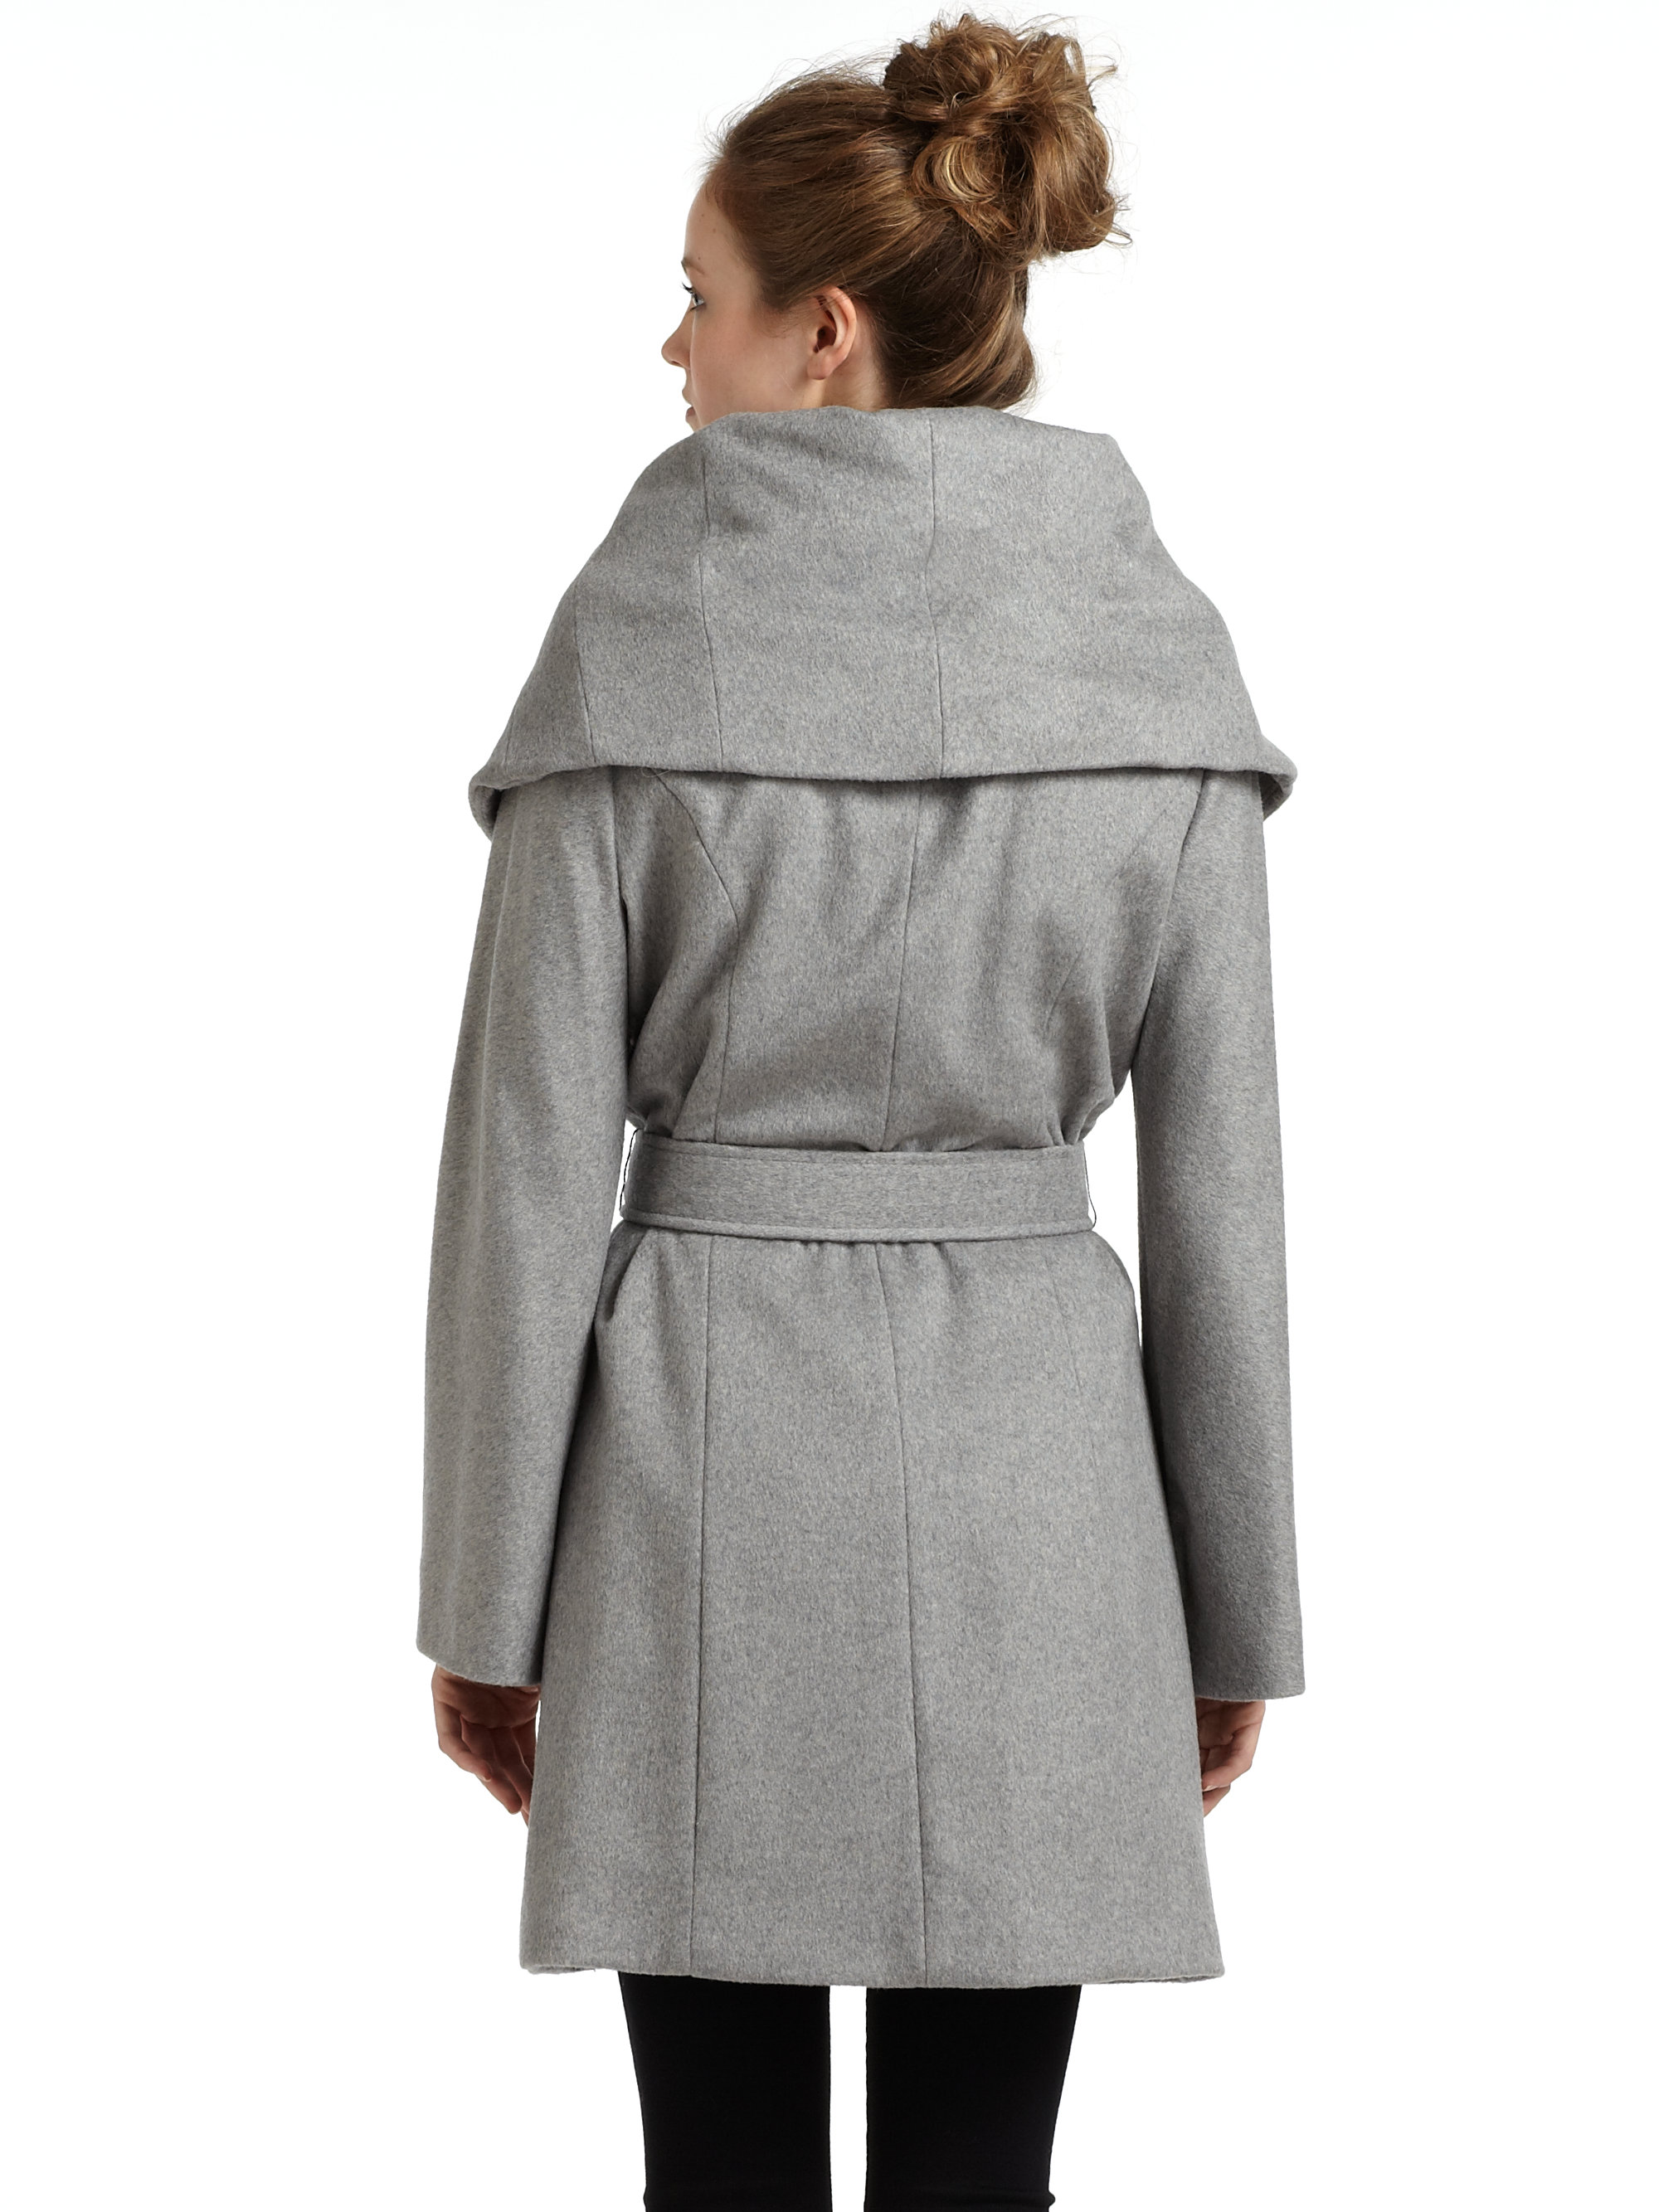 Tahari Marla Wool Blend Wrap Coat in Gray | Lyst